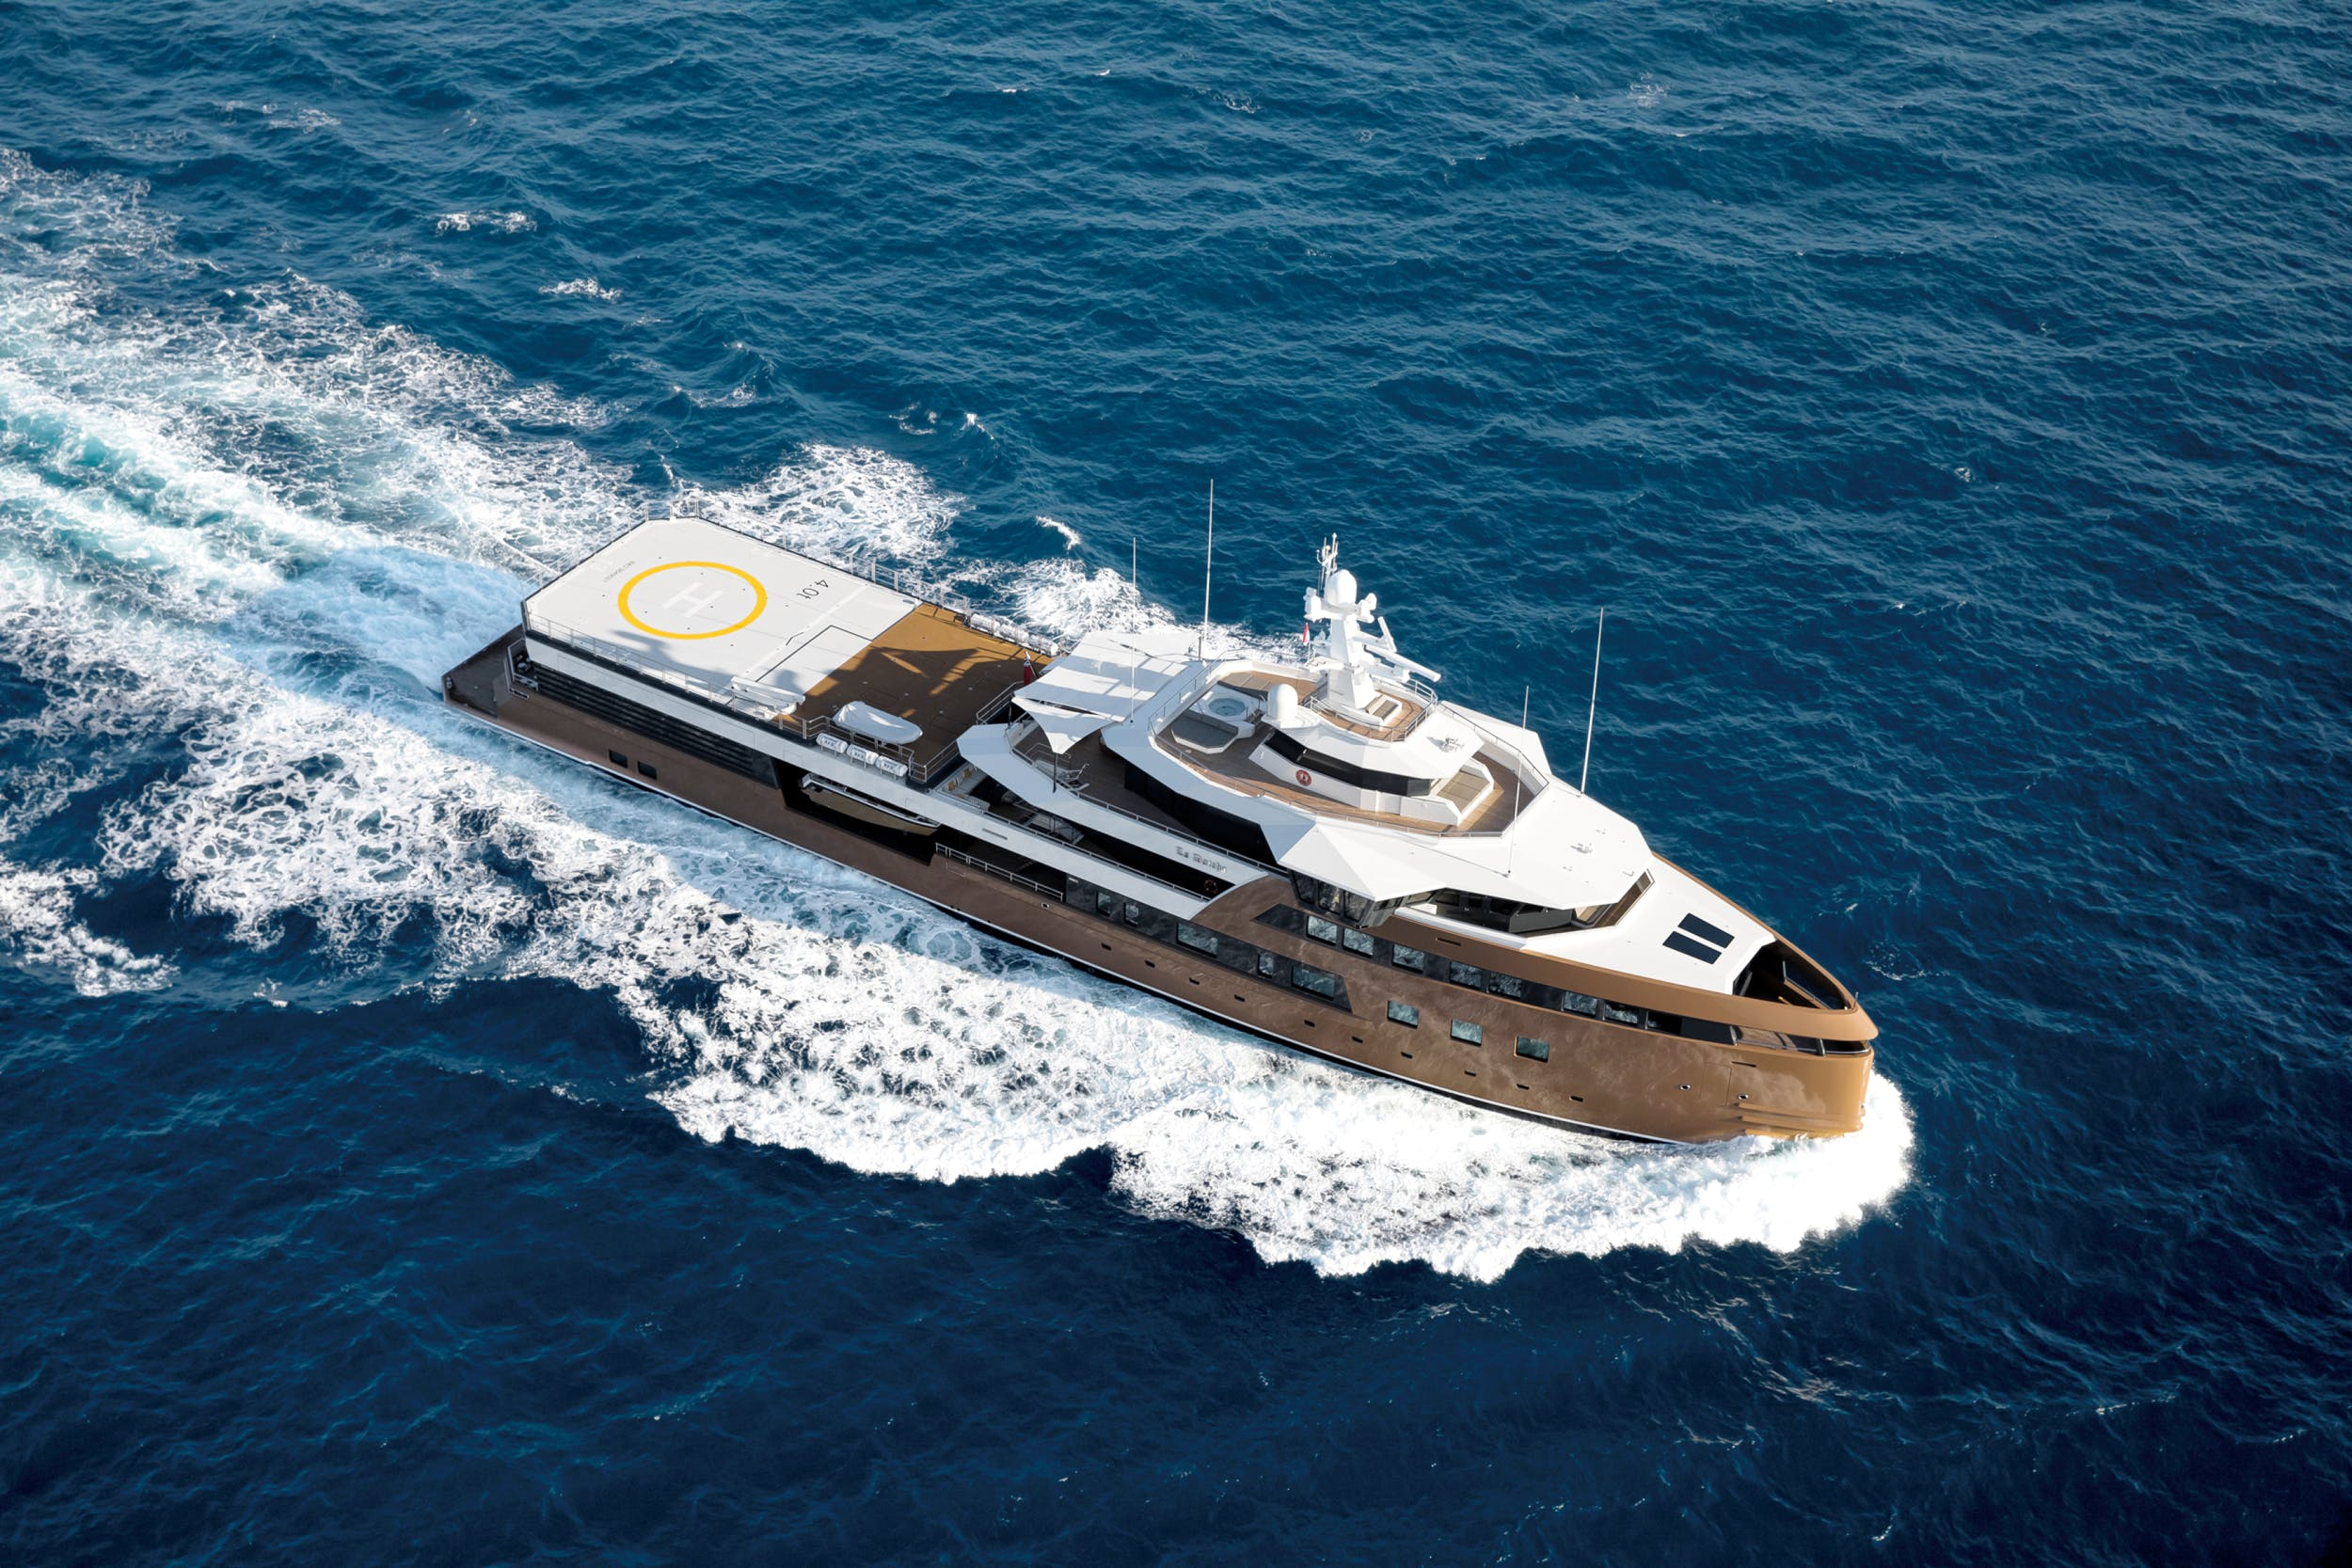 LA DATCHA -  NEW ADDITION TO IMPERIAL'S LUXURY CHARTER FLEET